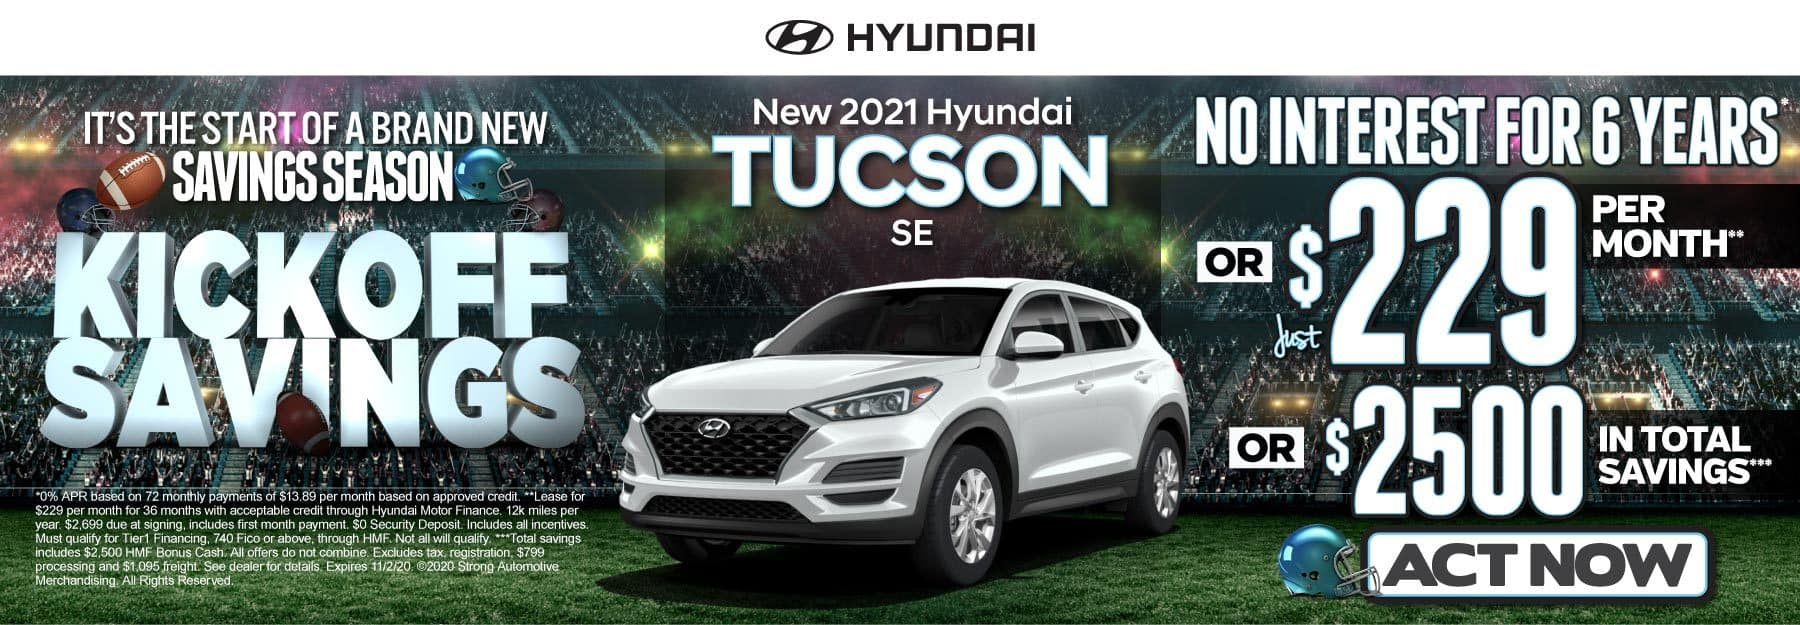 New 2021 Hyundai Tucson | No Interest for 6 Years or just $229 per month | Click to View Inventory